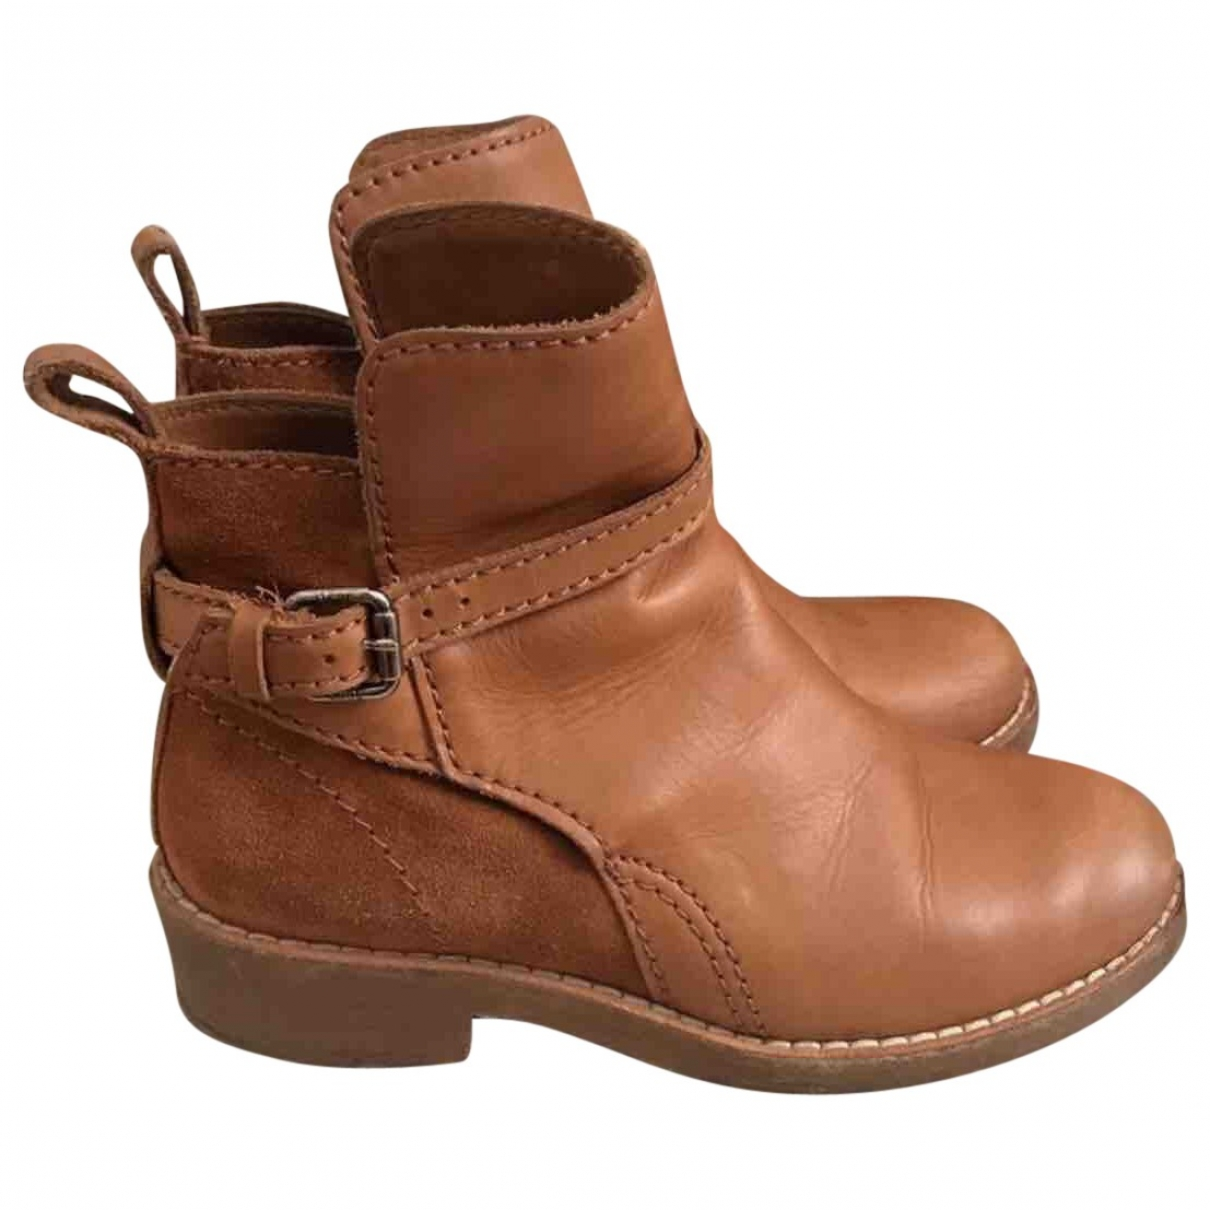 Acne Studios Cypress Camel Leather Ankle boots for Women 35 EU